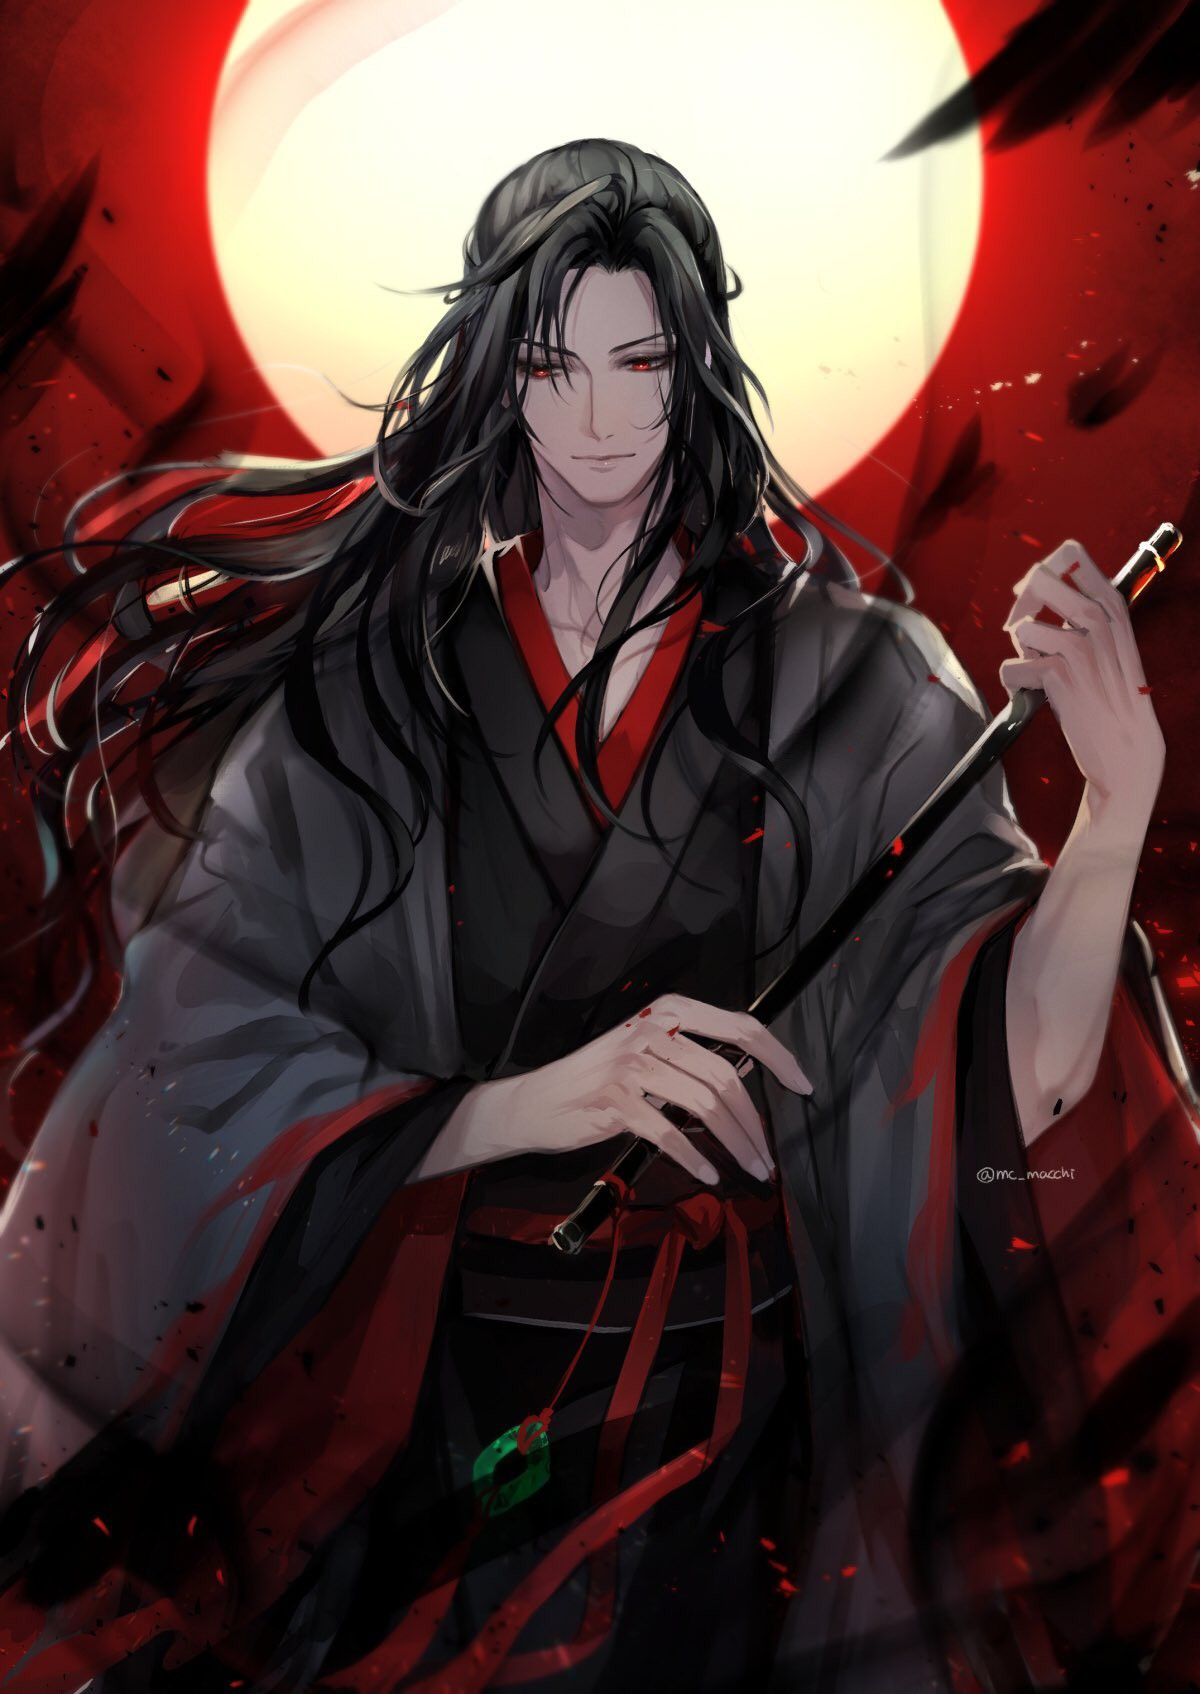 Pin by Ori on MXTX Handsome anime guys, Cute anime guys